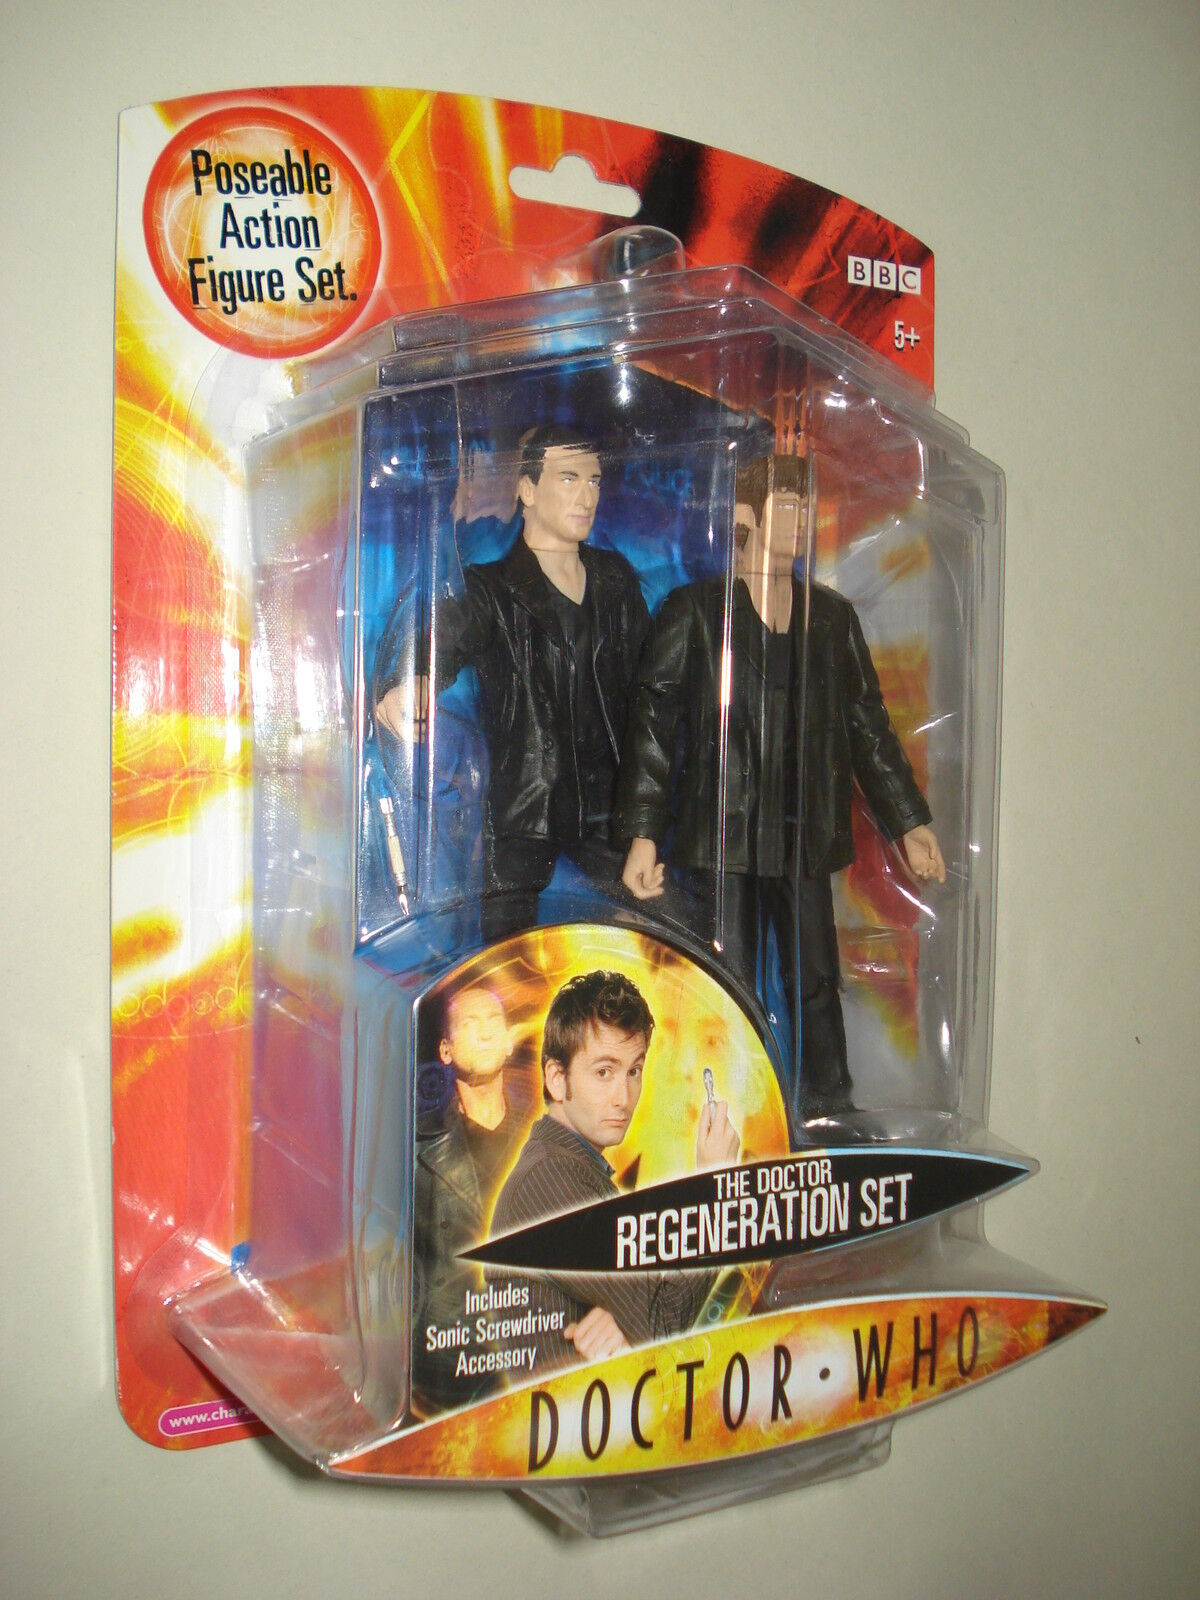 DOCTOR WHO - The Doctor REGENERATION Set 5